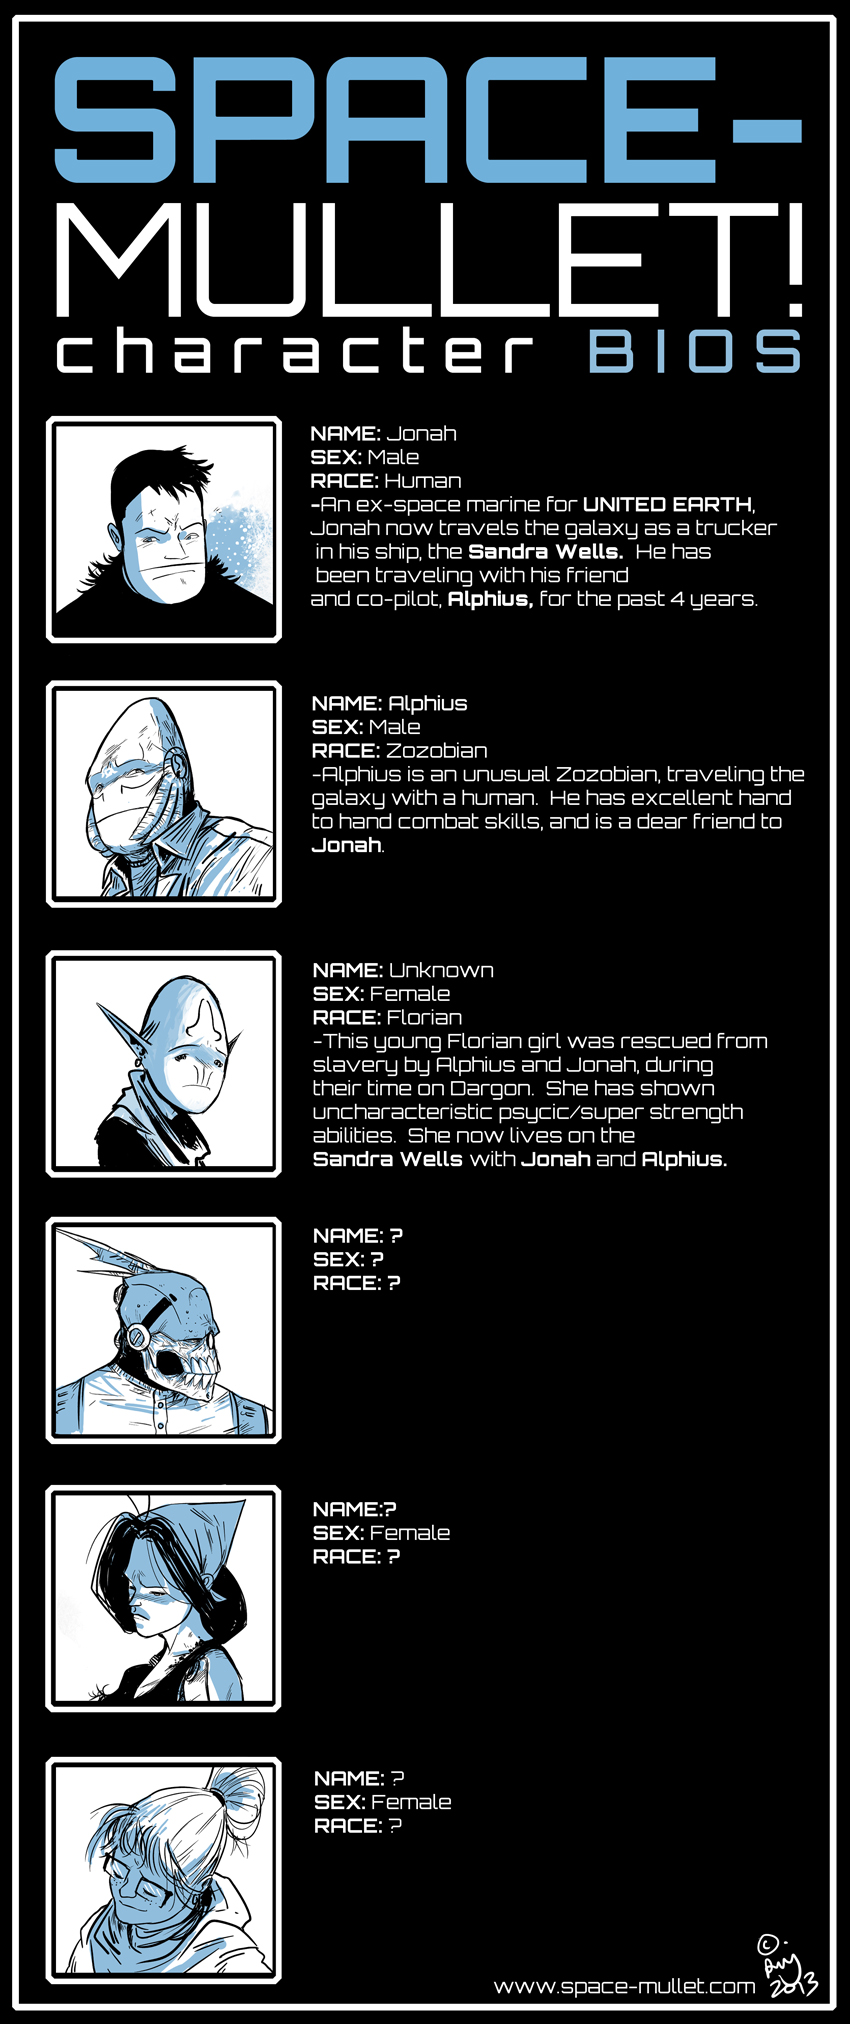 character bios space mullet